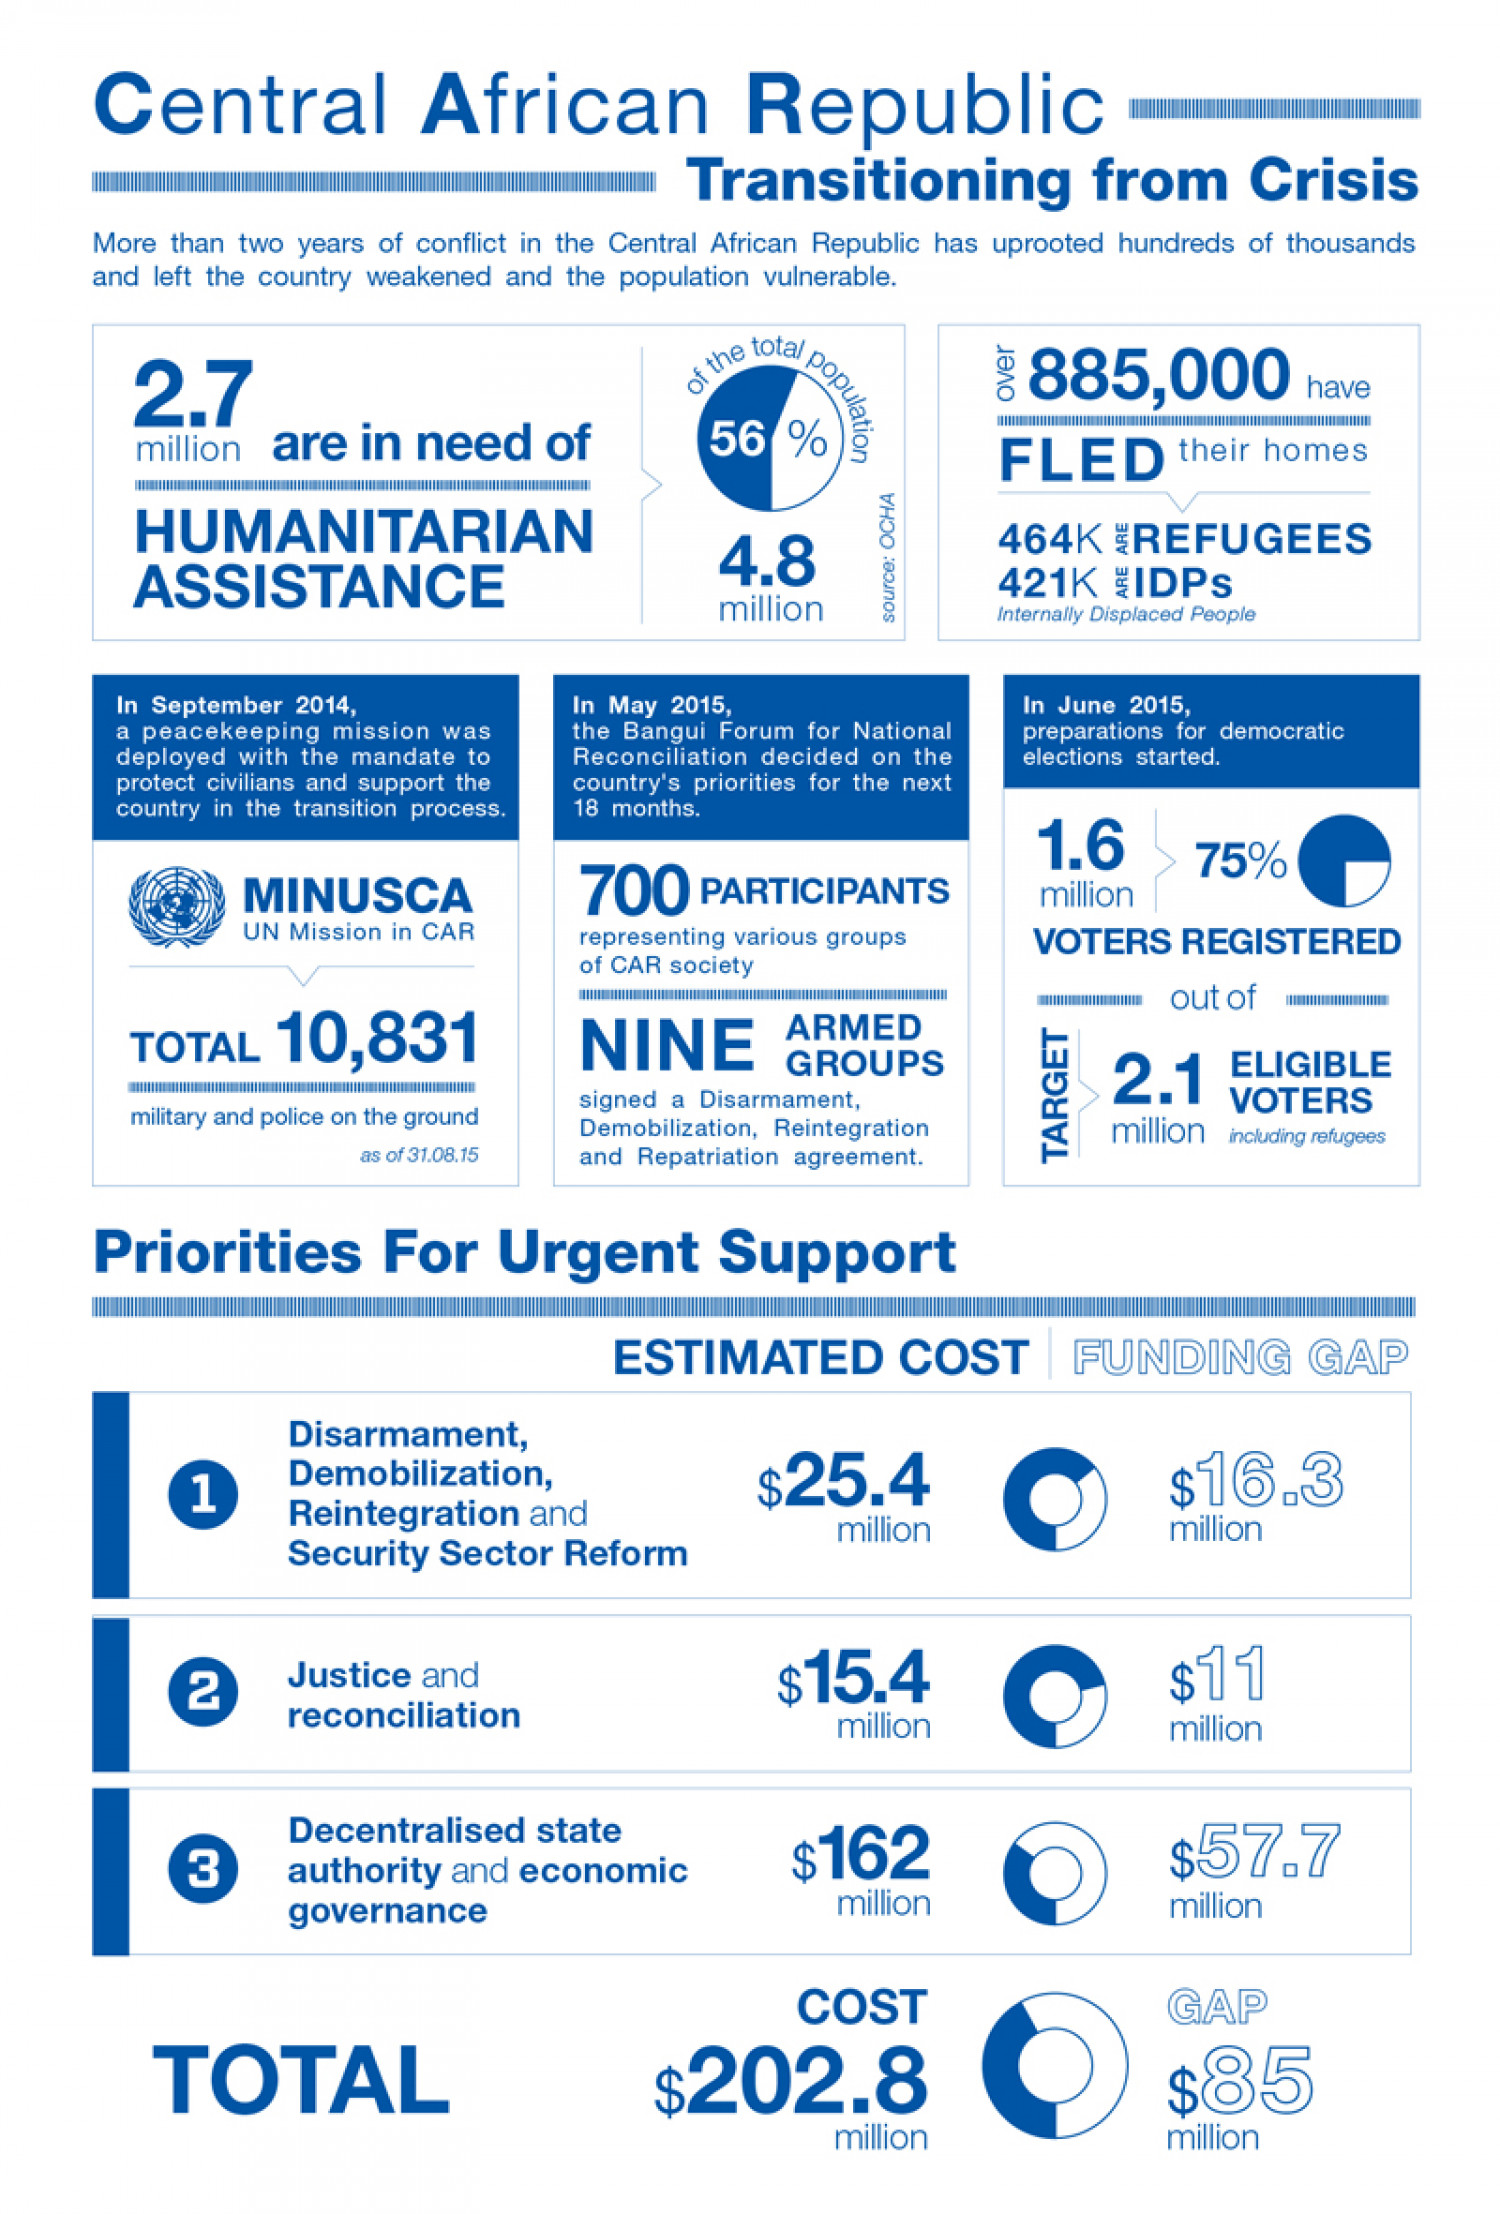 Central African Republic - Transitioning from Crisis Infographic